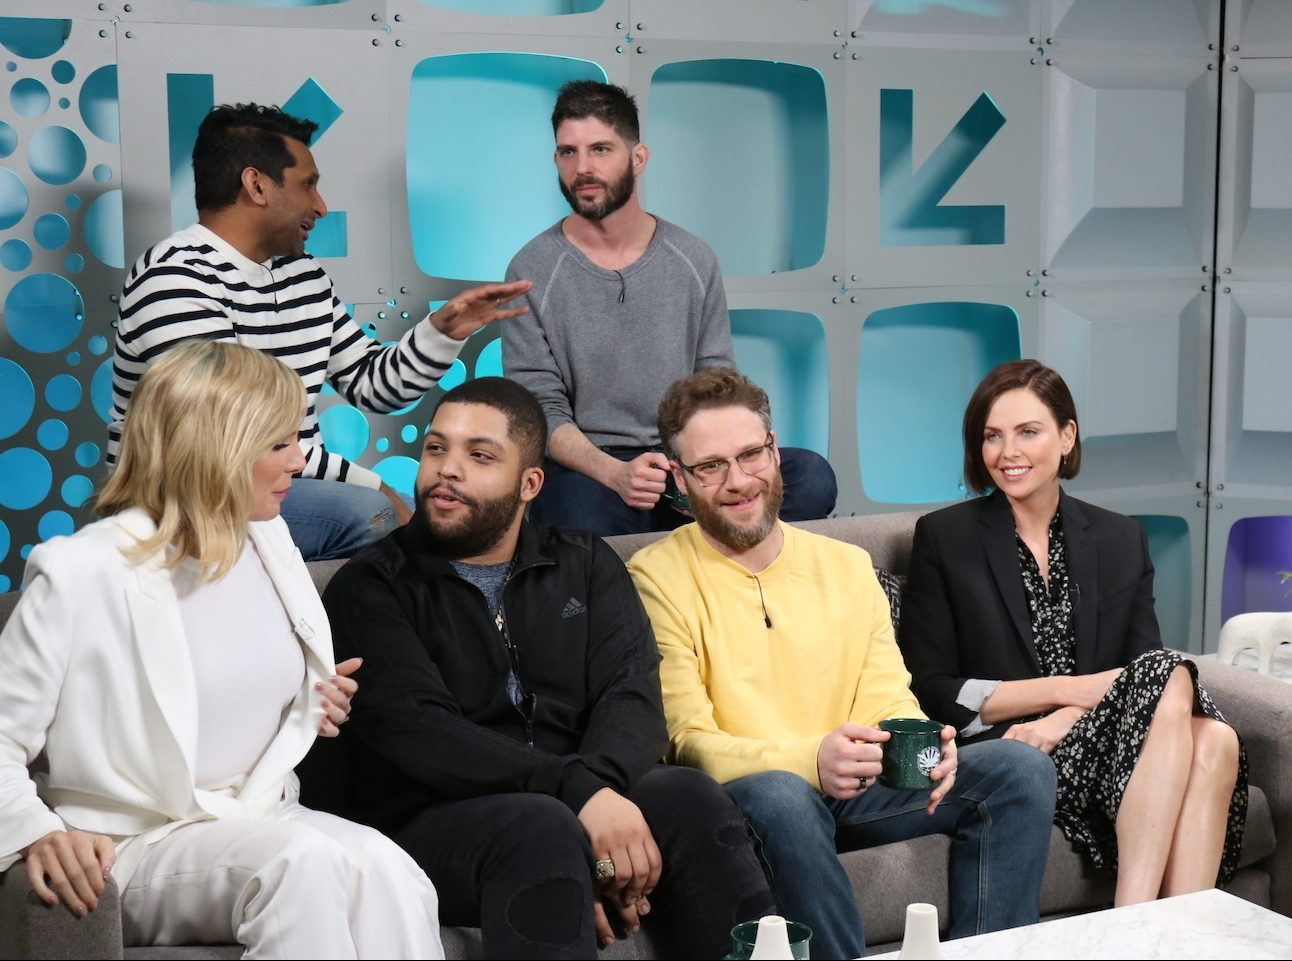 The cast of Long Shot stop by the studio of SXSW Live.